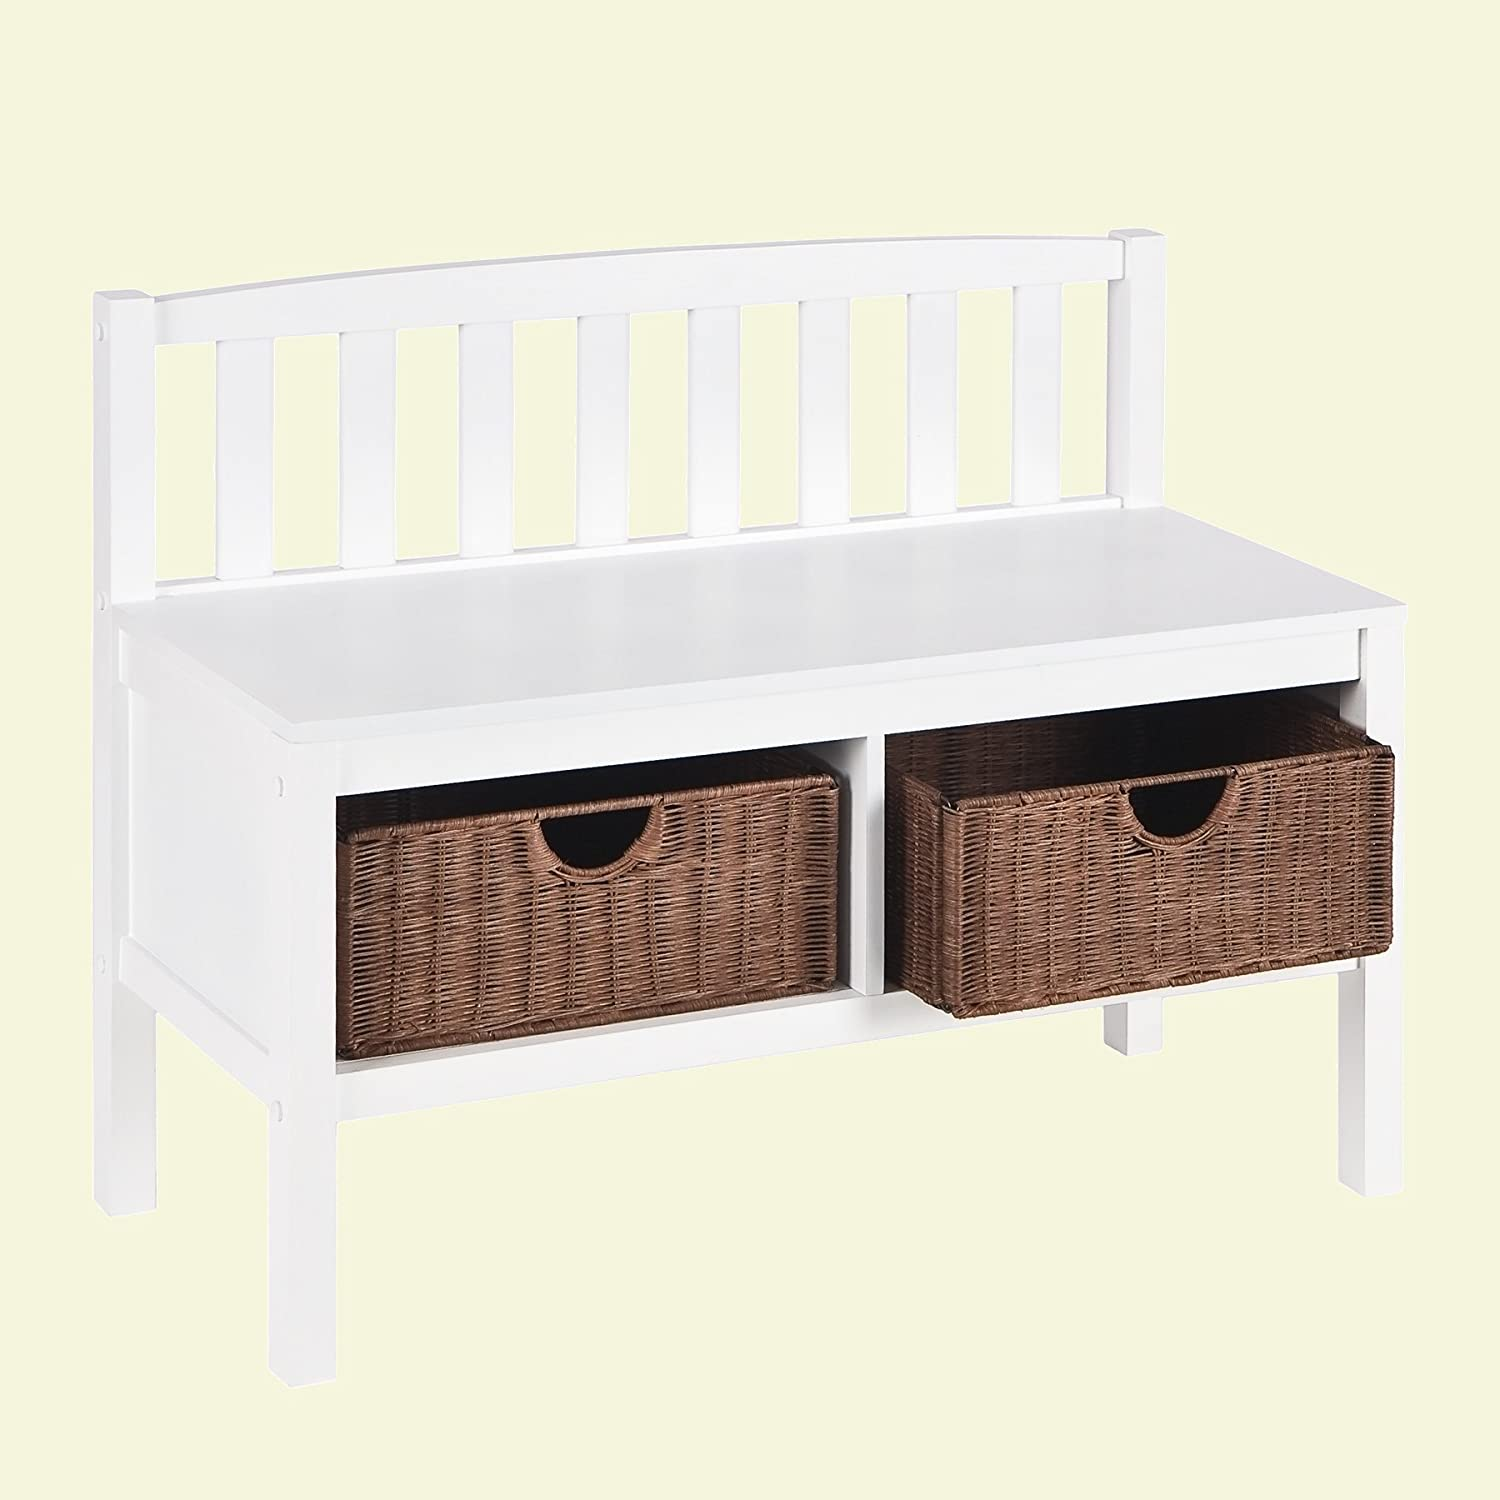 Benches with storage box: overview, features, types and reviews 16